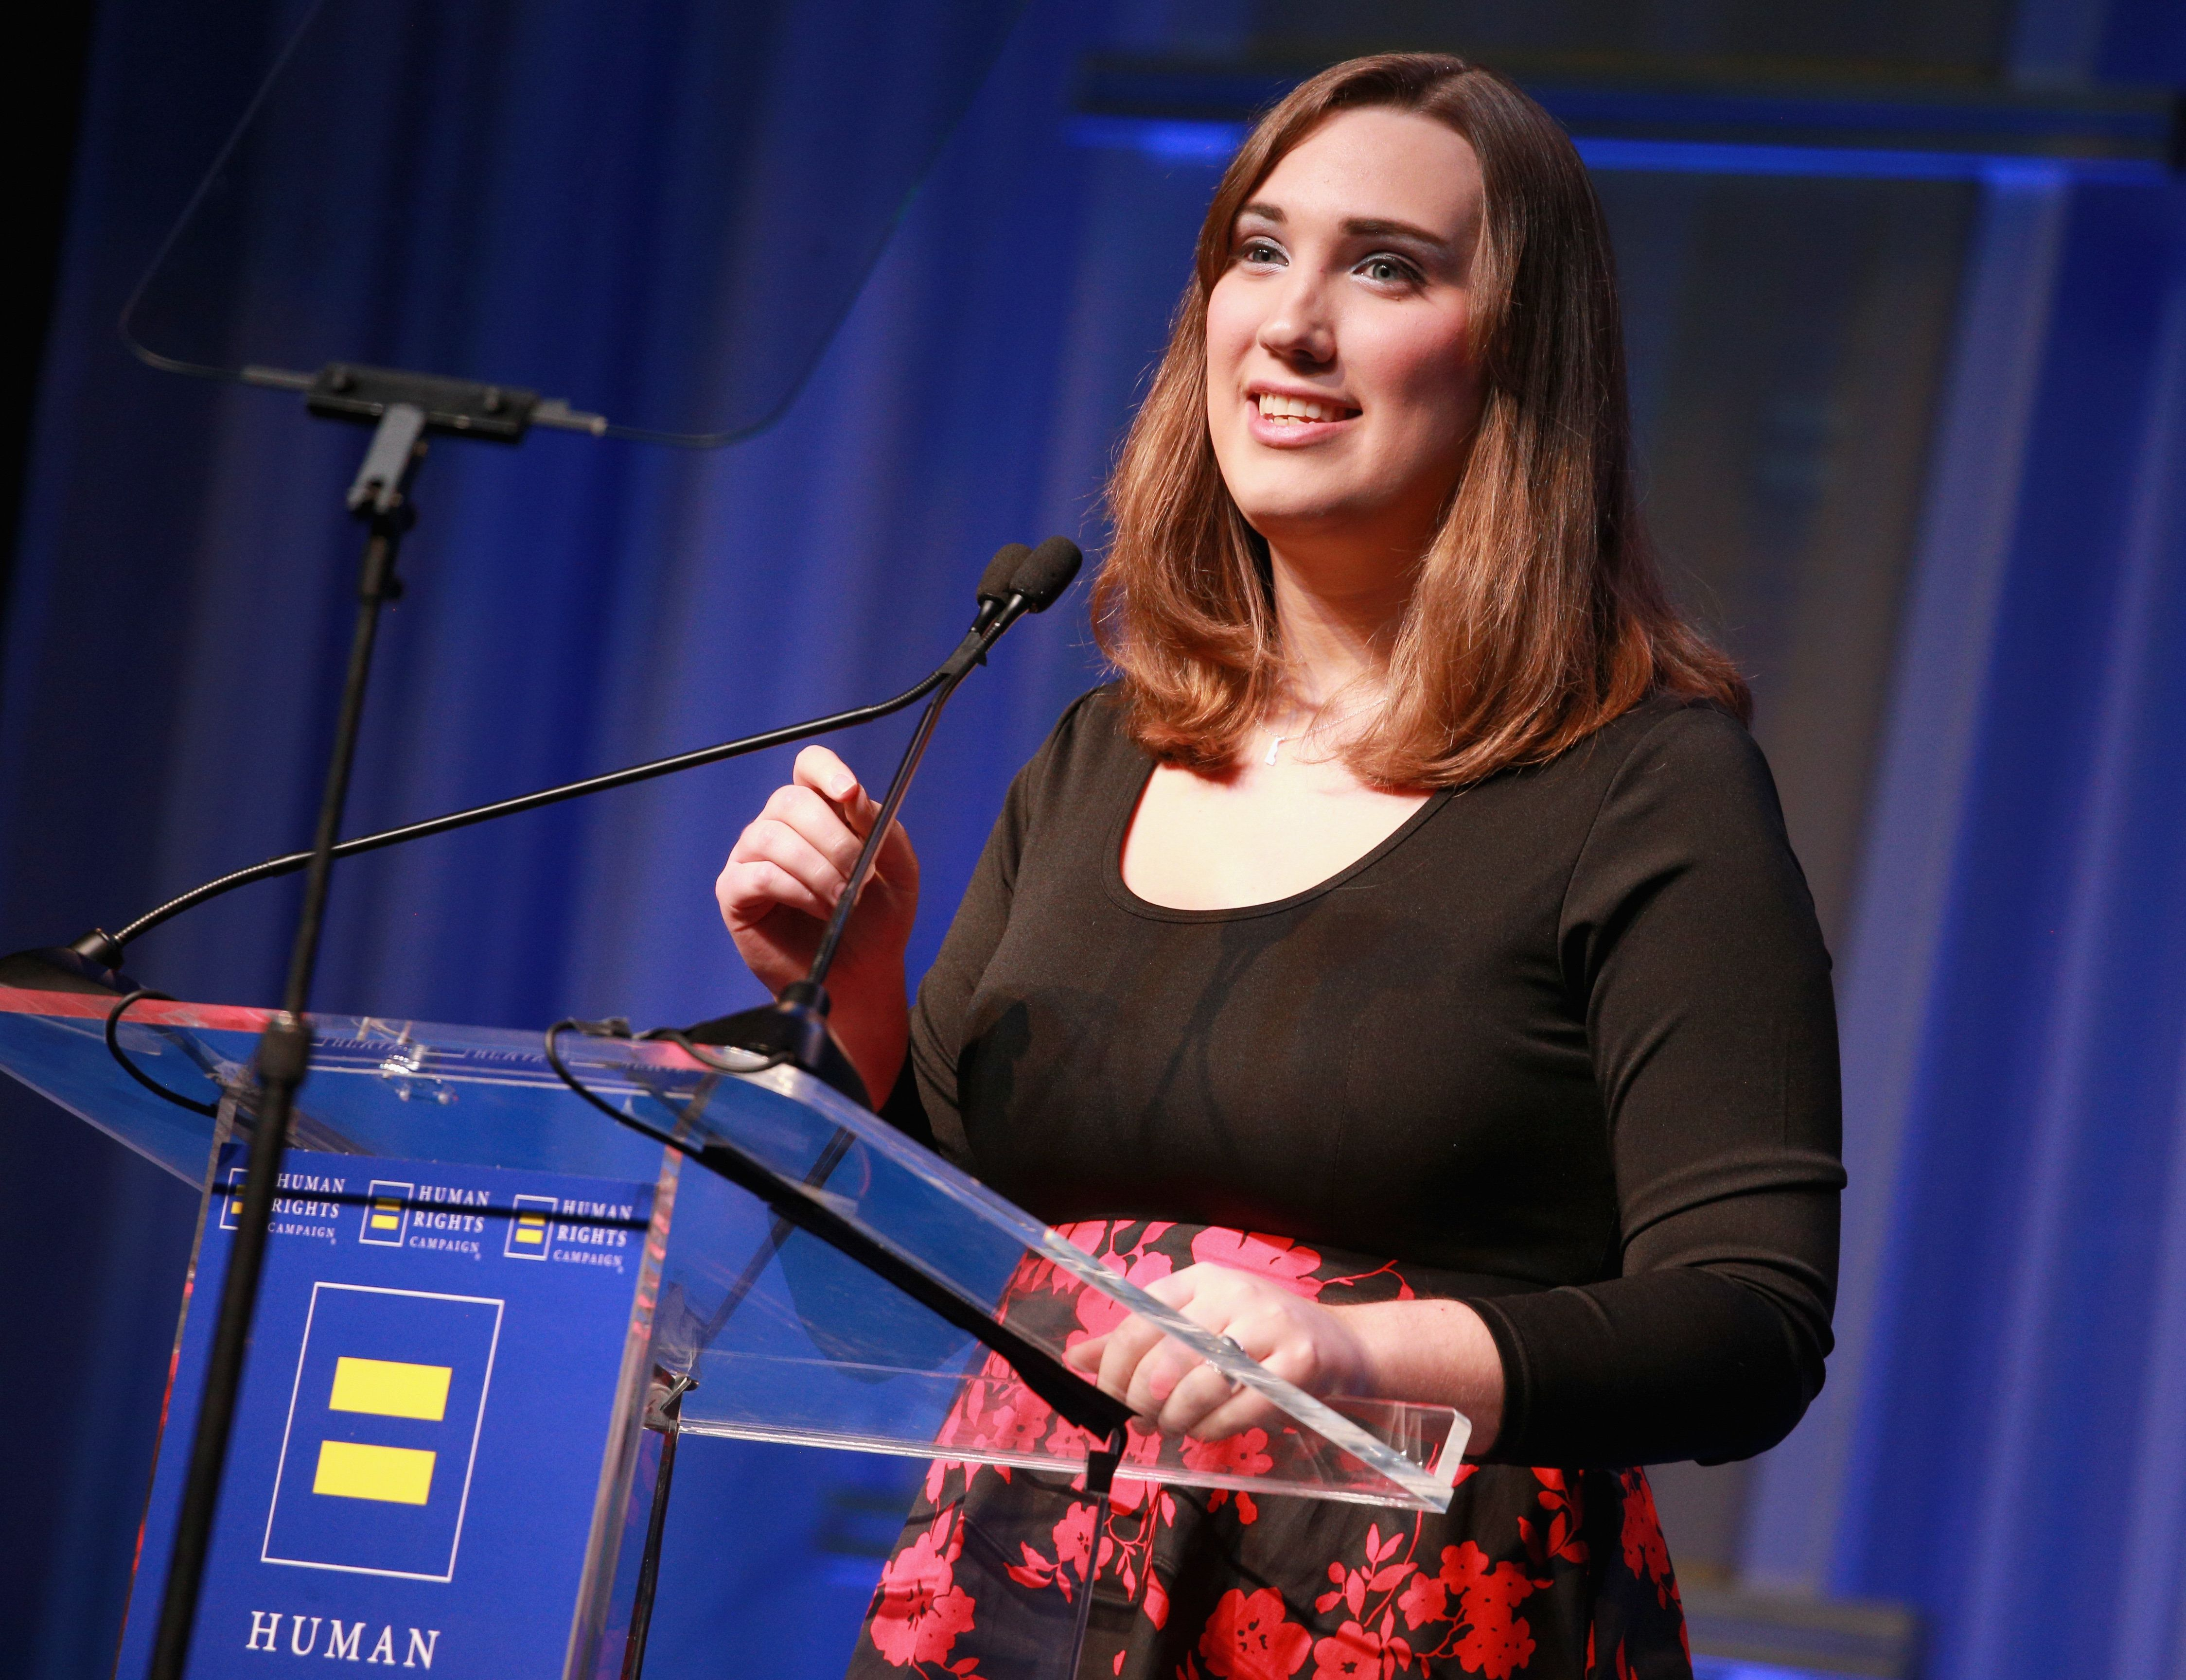 Sarah McBride speaking at the Human Rights Campaign 2018 Gala Dinner in Los Angeles.